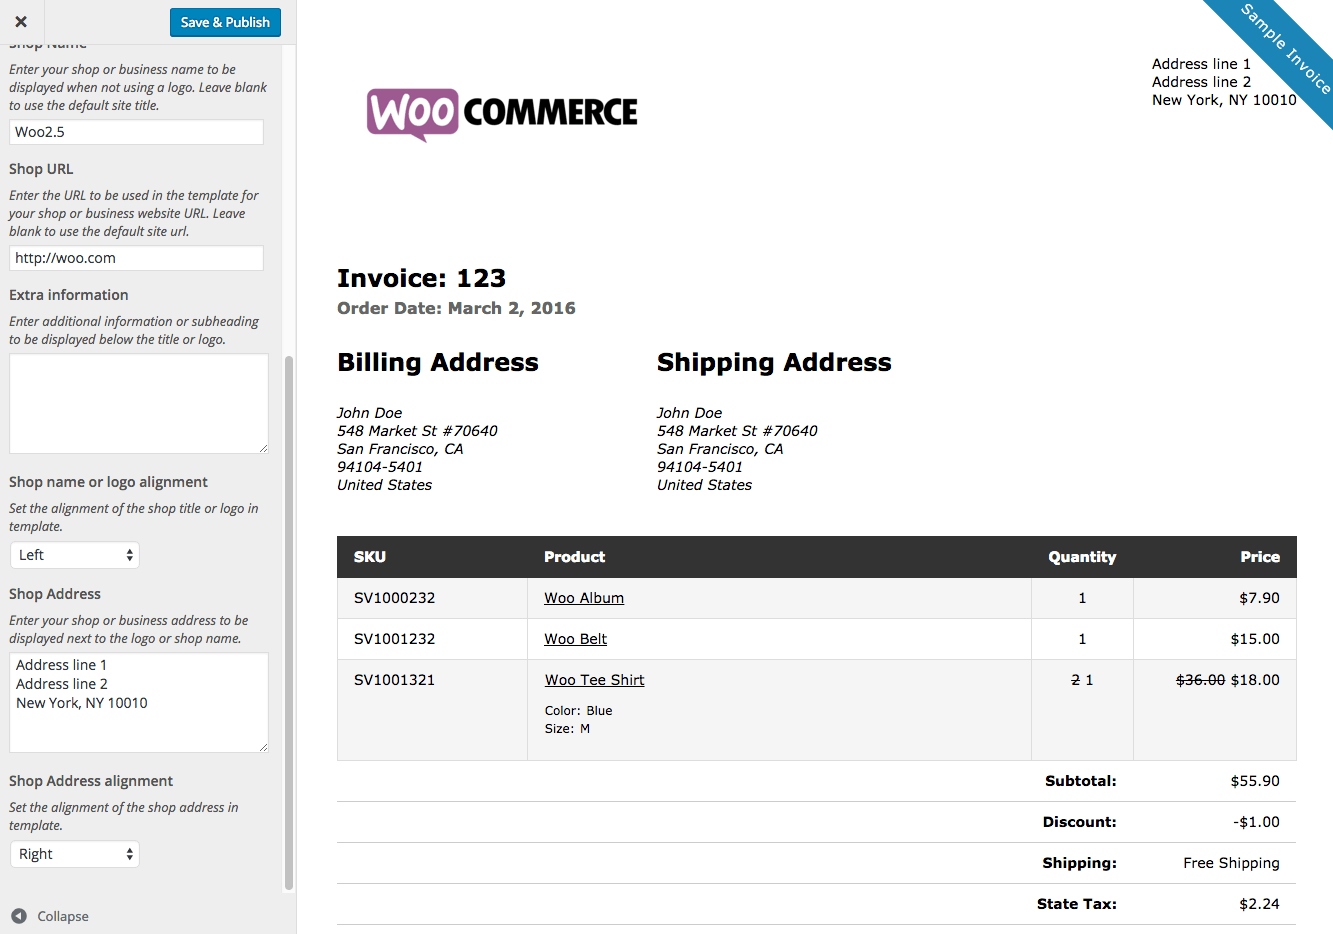 Pigbrotherus  Gorgeous Woocommerce Print Invoices Amp Packing Lists  Woocommerce Docs With Licious Woocommerce Print Invoices  Packing Lists Customizer With Delectable Create Your Own Invoice Also Patient Invoice In Addition Small Business Invoicing And Invoice Tracking Software As Well As Invoice Generator Mac Additionally Invoice Templates Pdf From Docswoocommercecom With Pigbrotherus  Licious Woocommerce Print Invoices Amp Packing Lists  Woocommerce Docs With Delectable Woocommerce Print Invoices  Packing Lists Customizer And Gorgeous Create Your Own Invoice Also Patient Invoice In Addition Small Business Invoicing From Docswoocommercecom